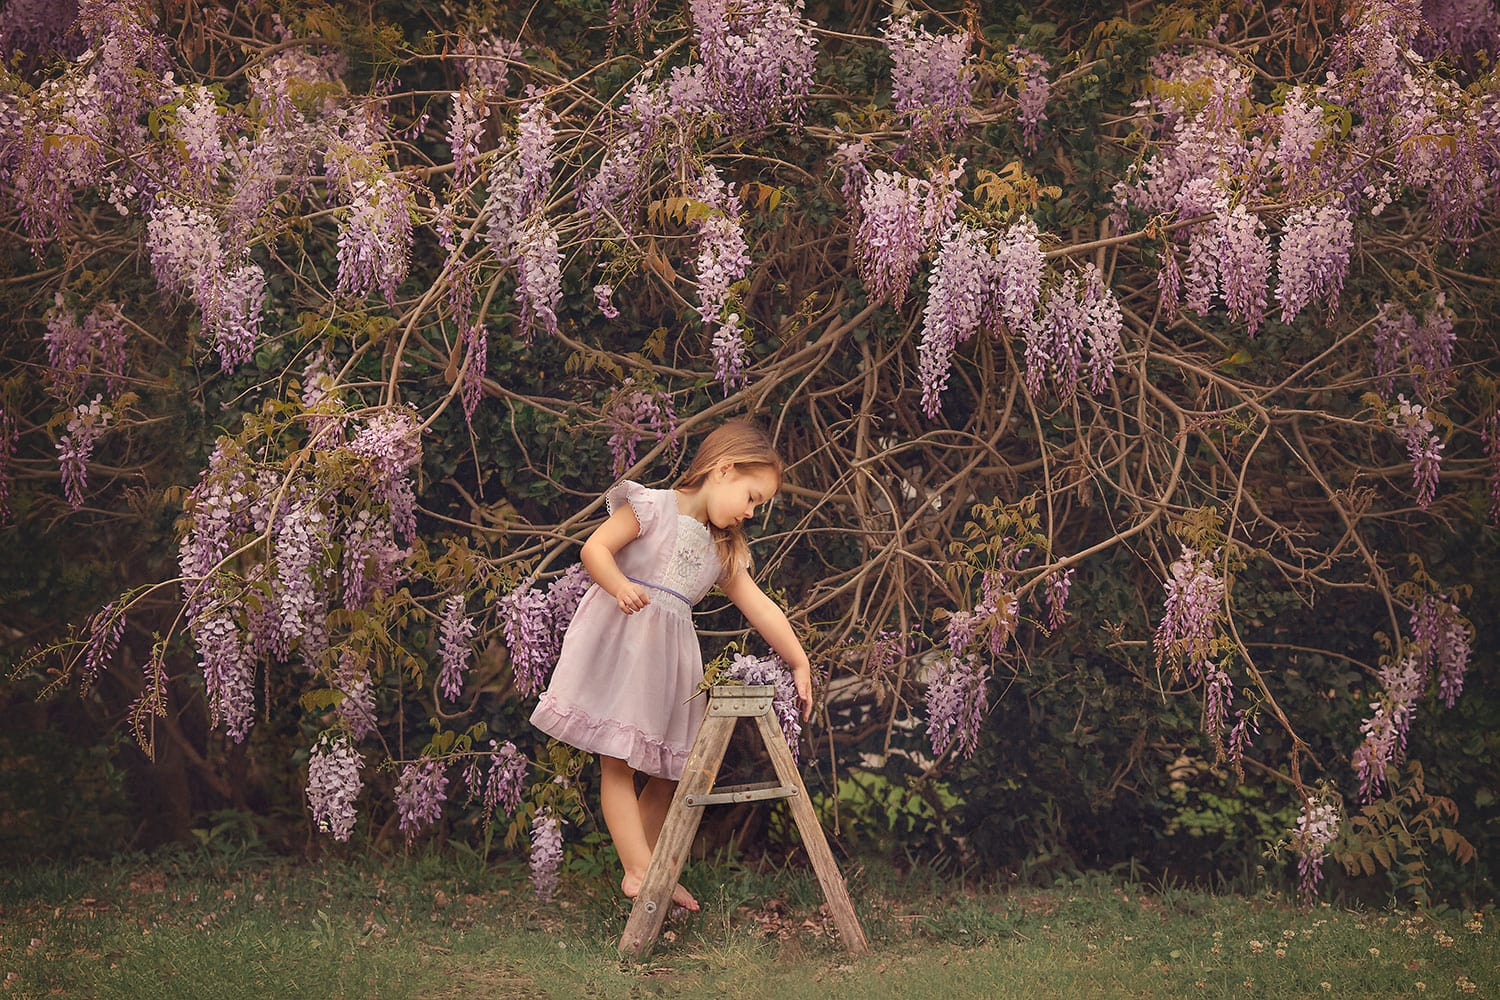 Stunning photo of four year old girl with wisteria vine